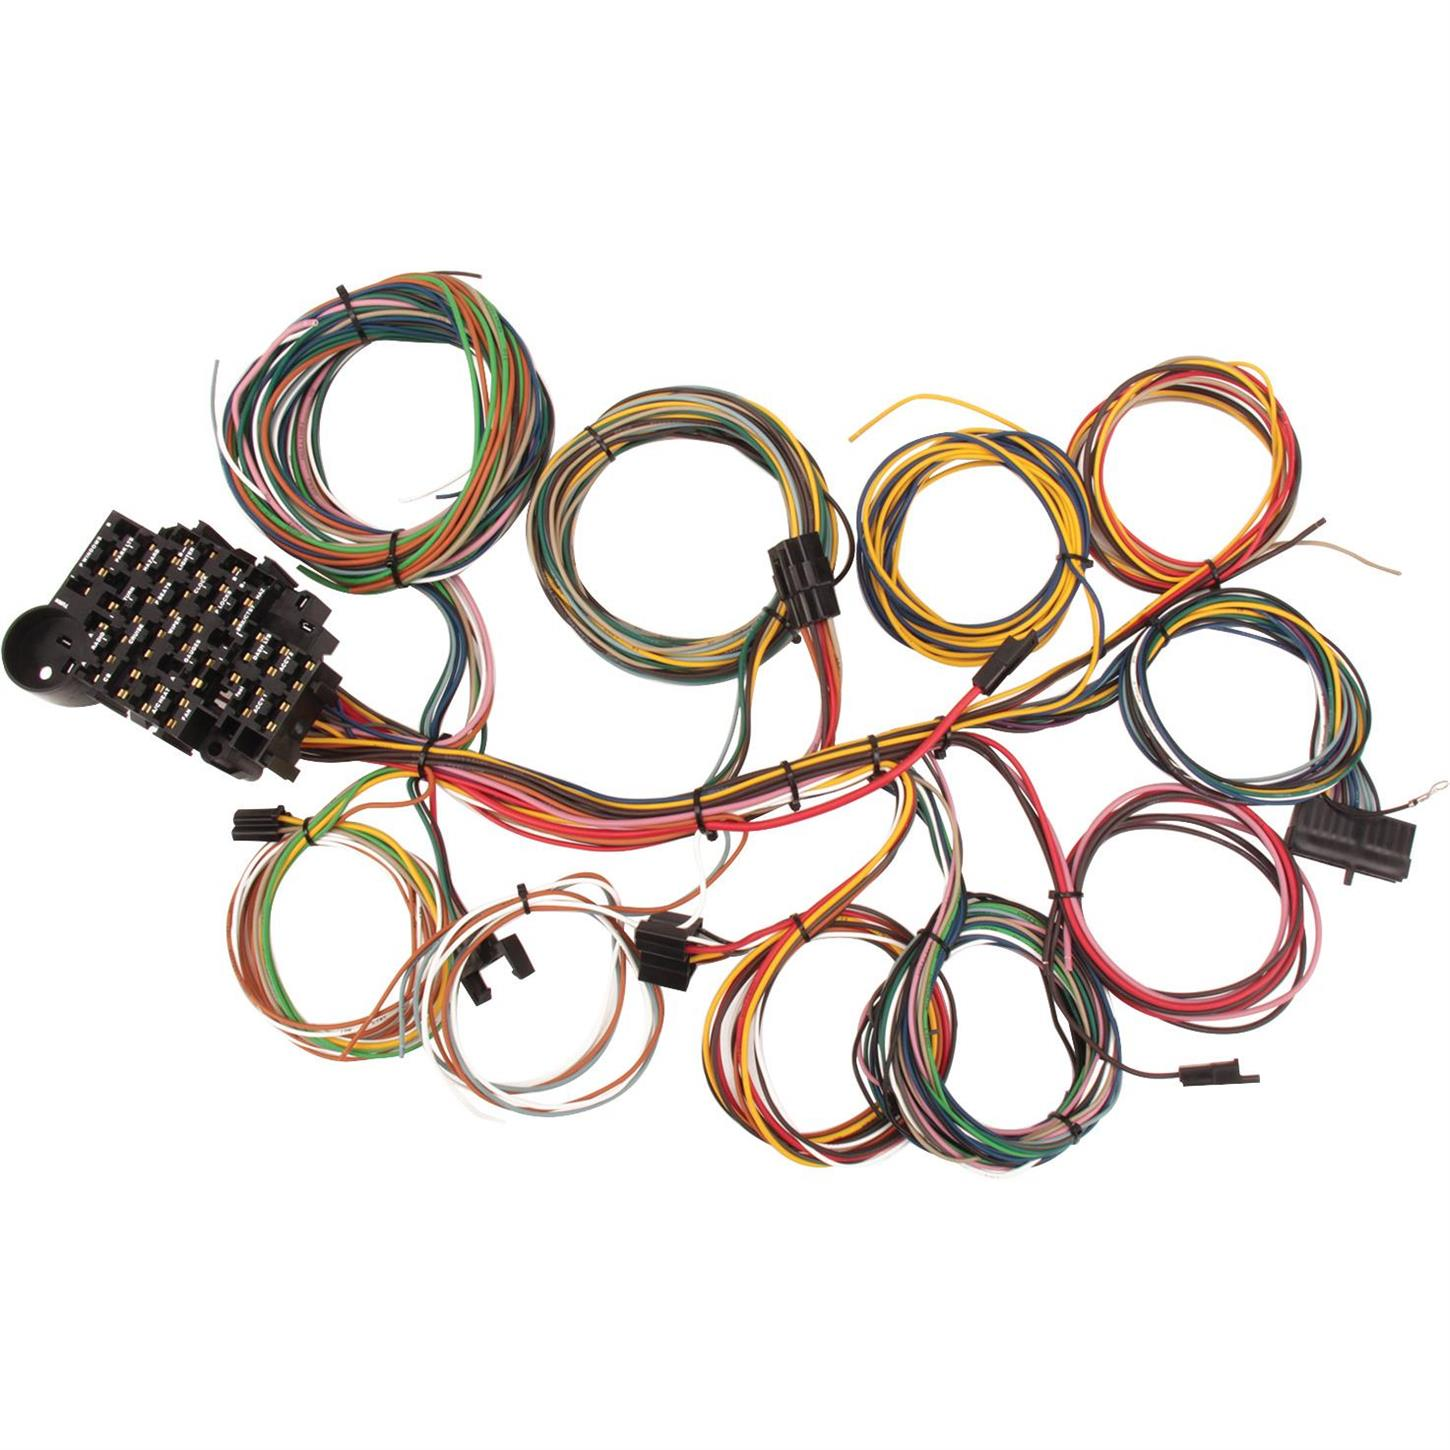 91064022_L1450_4a5a9e43 cdd2 4b2c 9c68 457f296054bd selecting a wiring harness for your street rod best street rod wiring harness at aneh.co